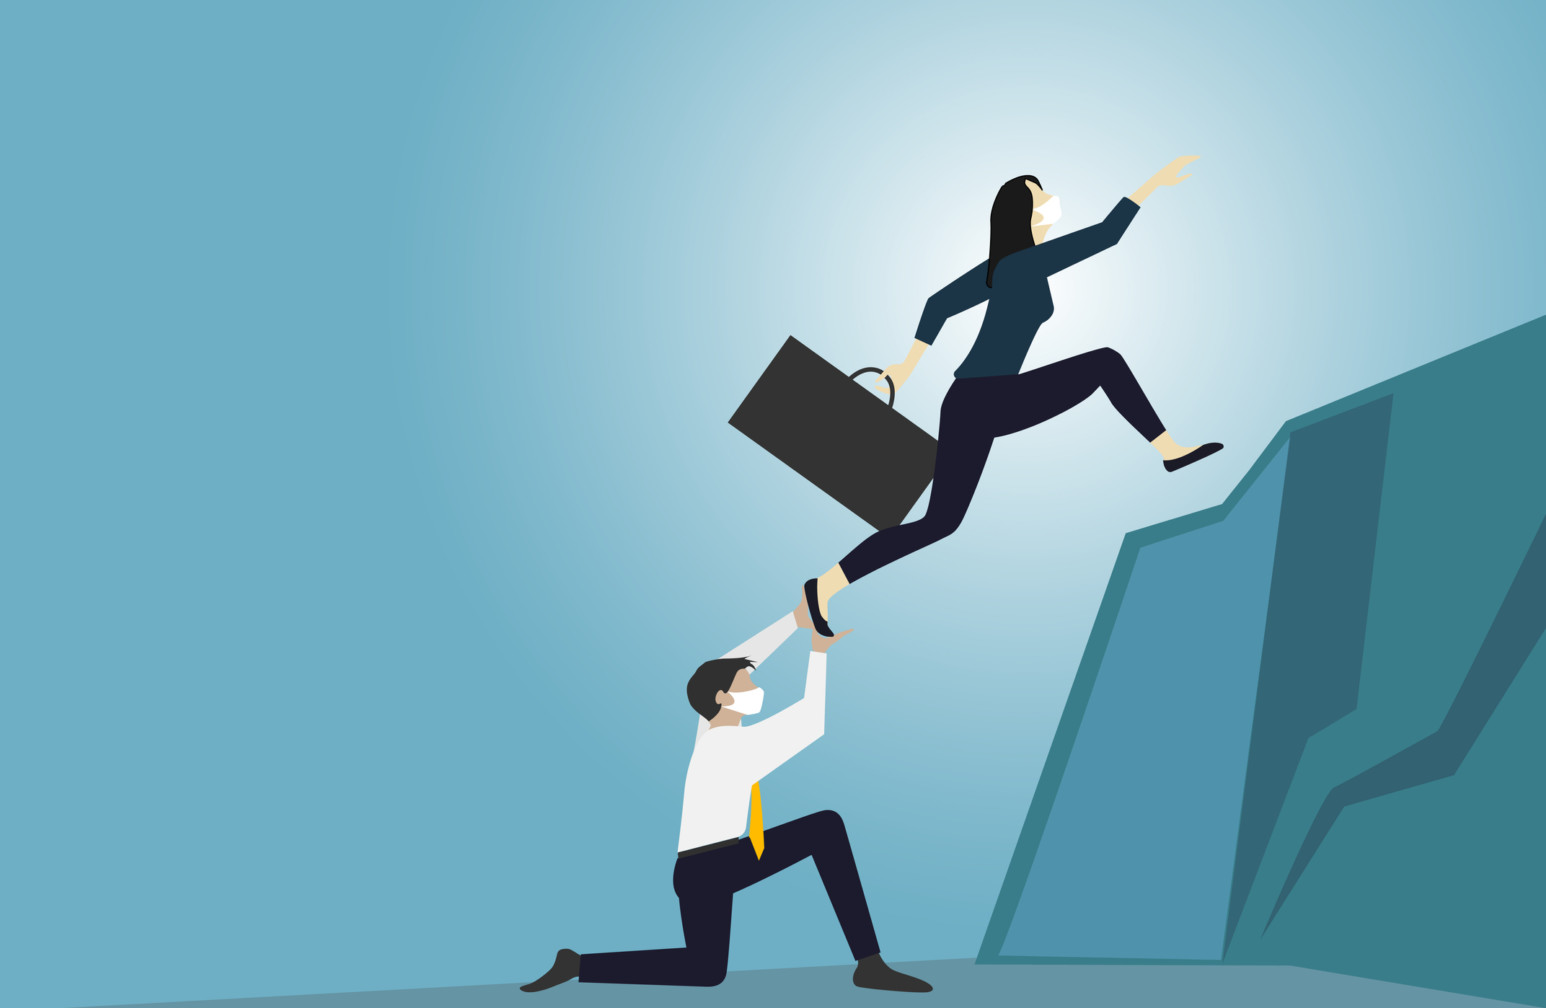 Executive coach helping leaders succeed